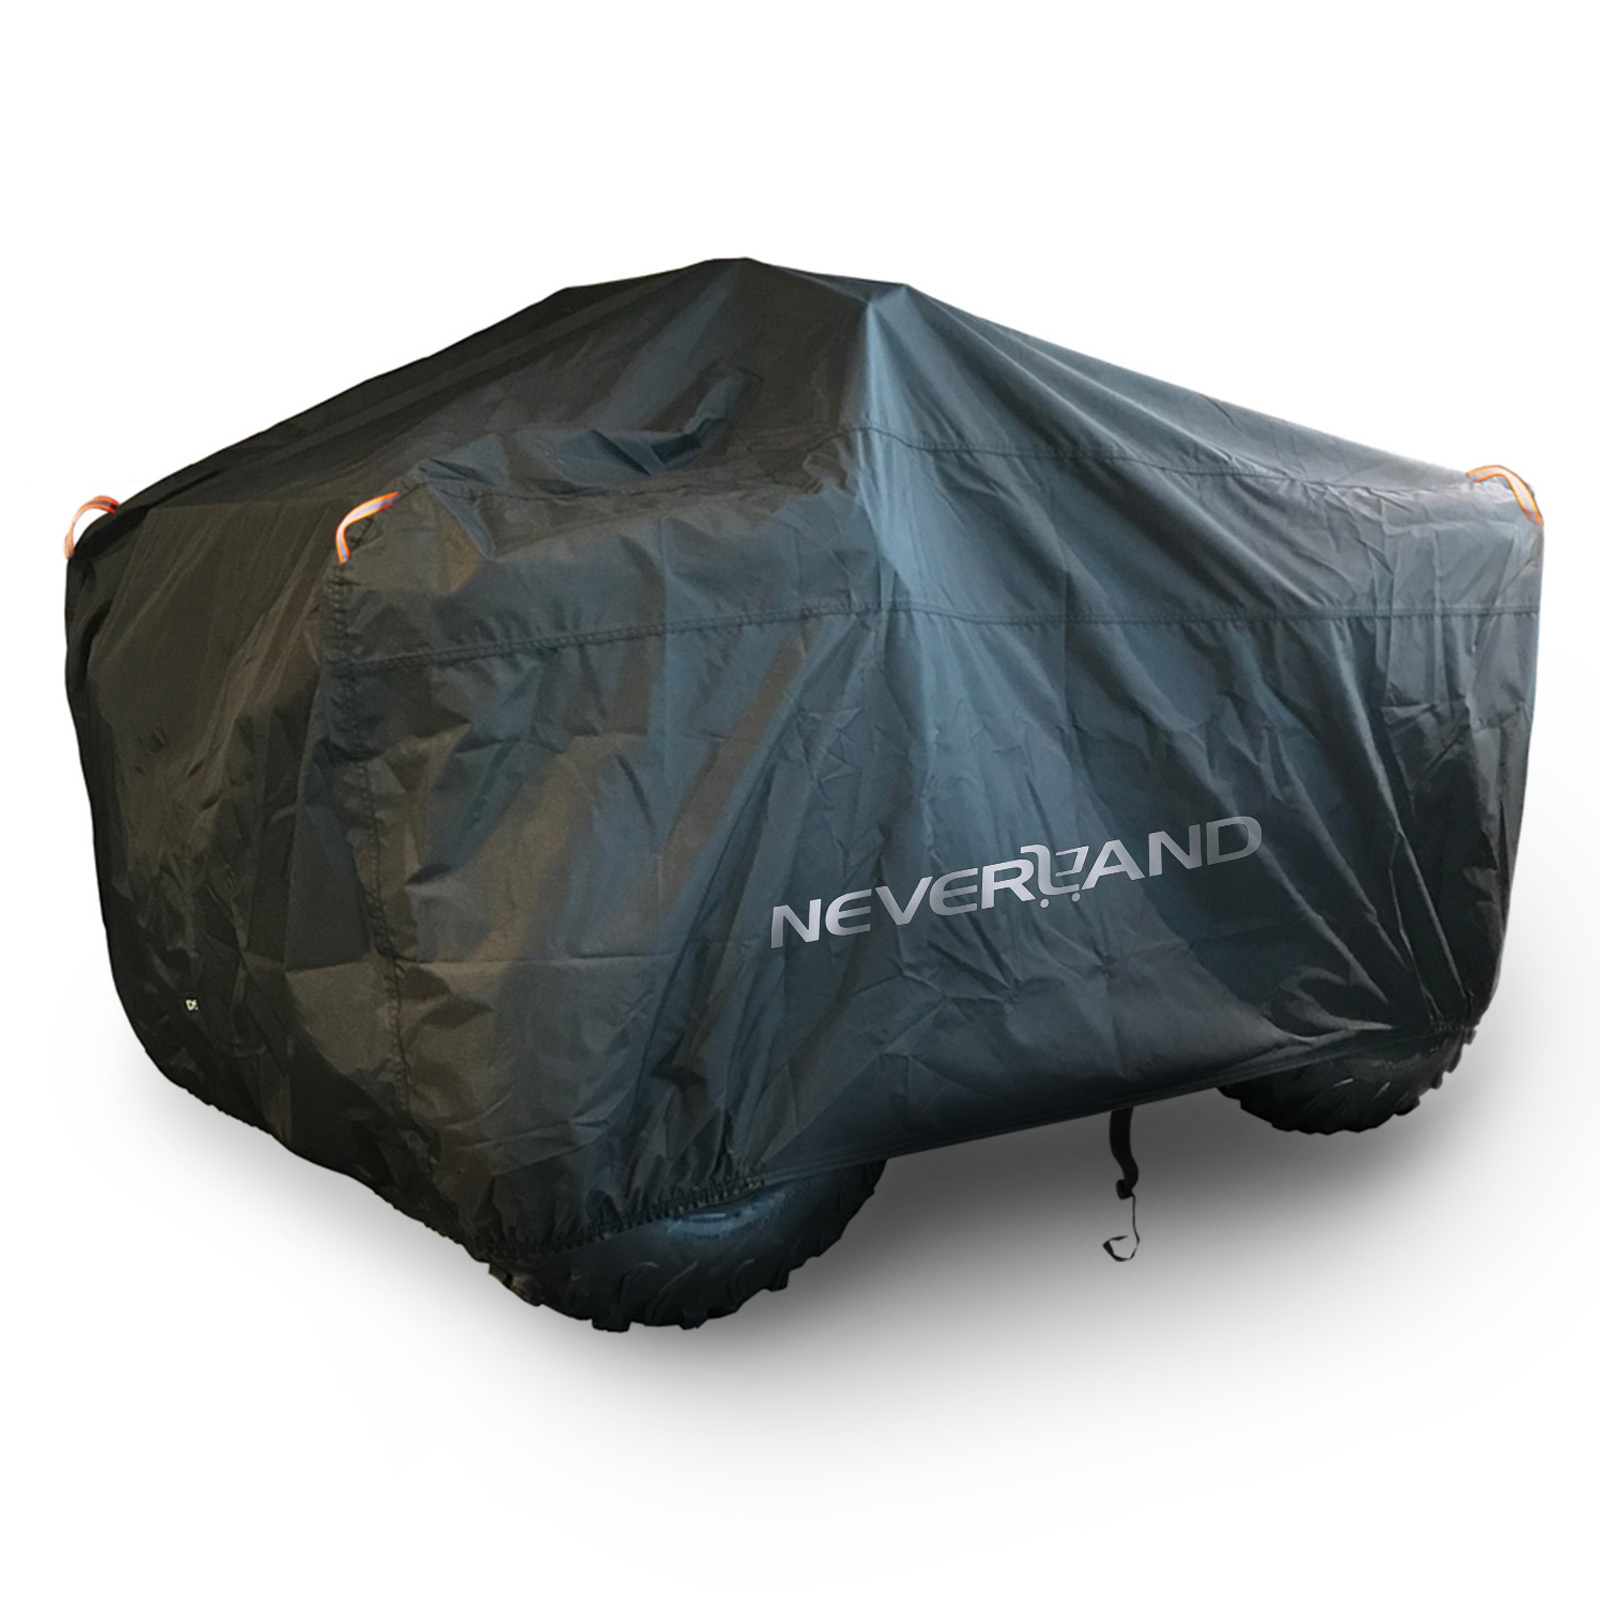 FitCovers black replacement seat cover for POLARIS SPORTMAN 1996 1997 1998 1999 2000 2001 2002 2003 2004 2005 2006 2007 2008 2009 2010 2011 2012 2013